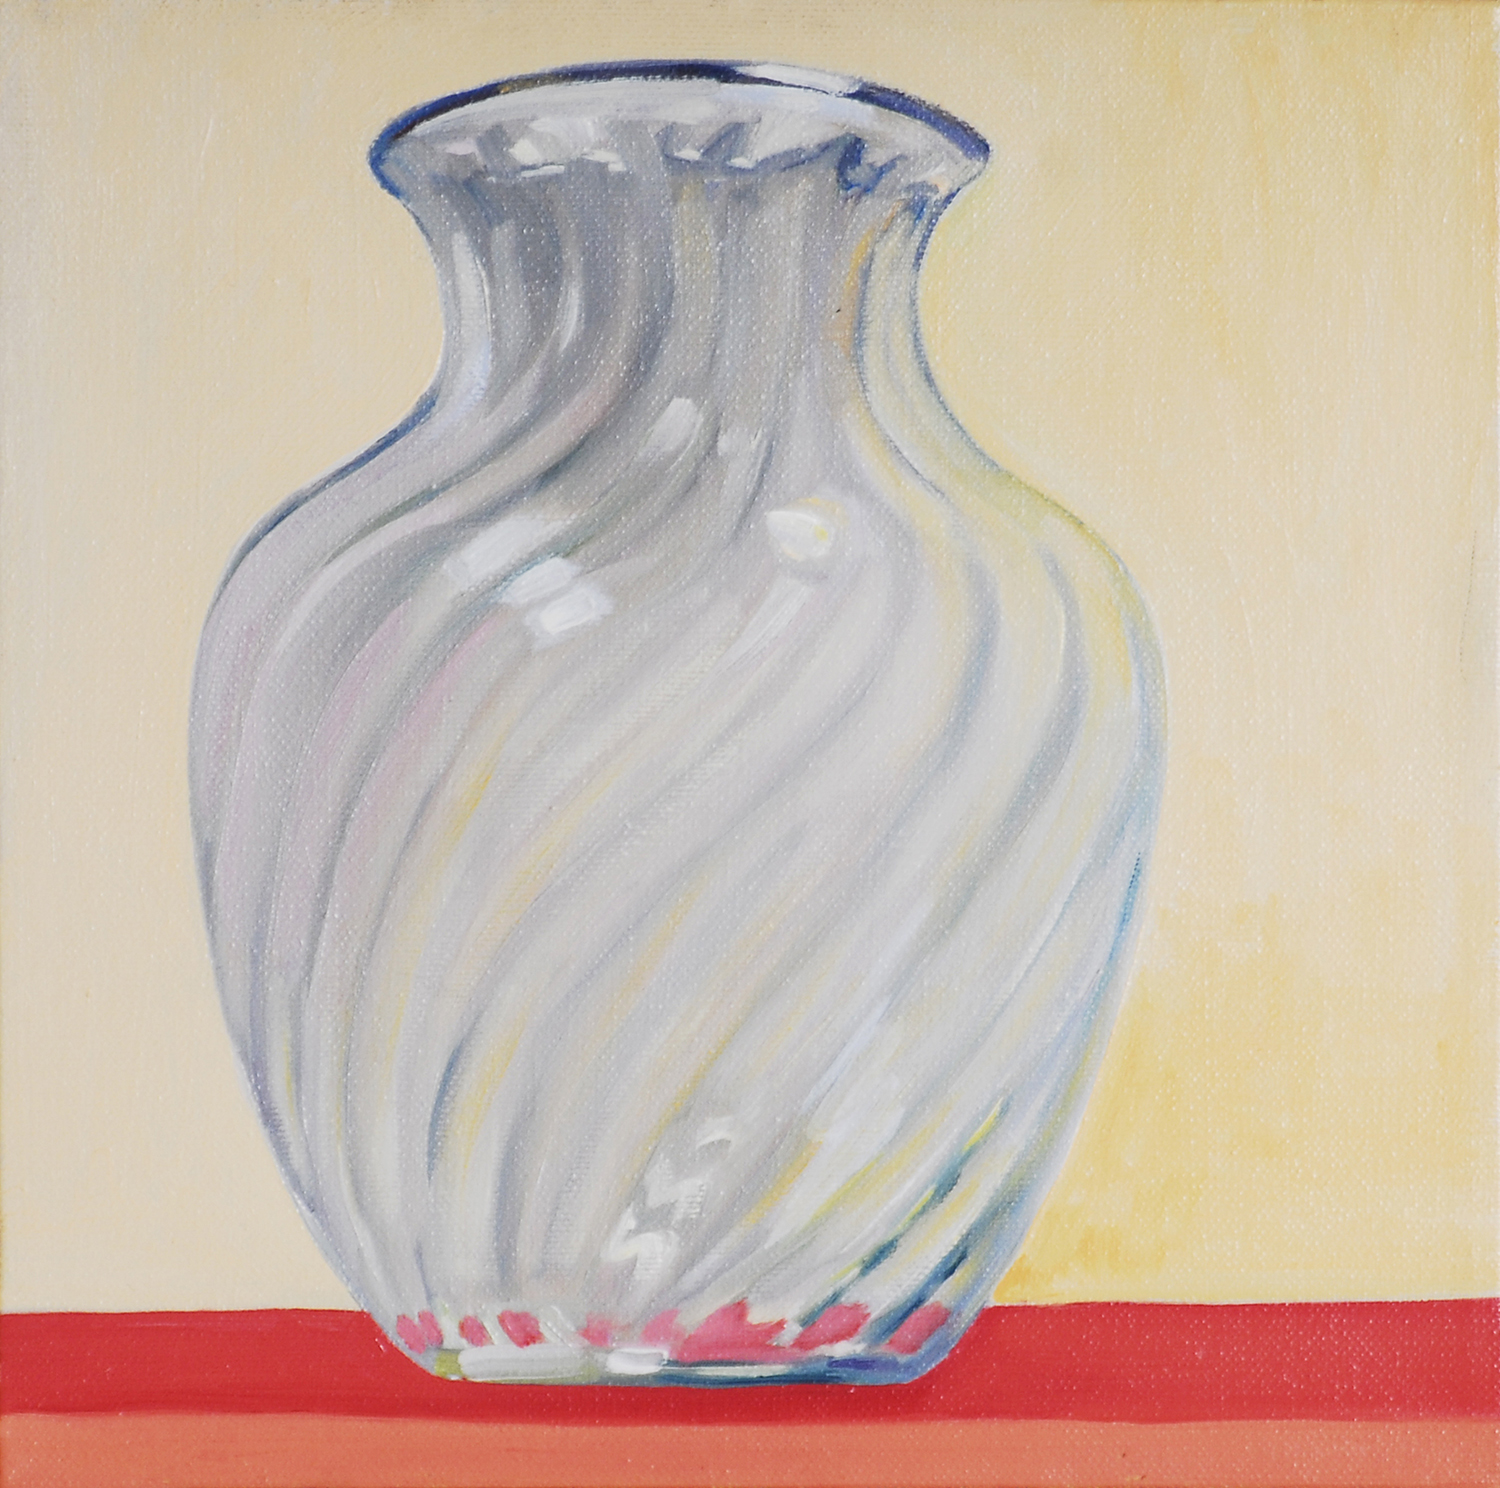 Glass Vase , oil on canvas, 10 x 10 in.